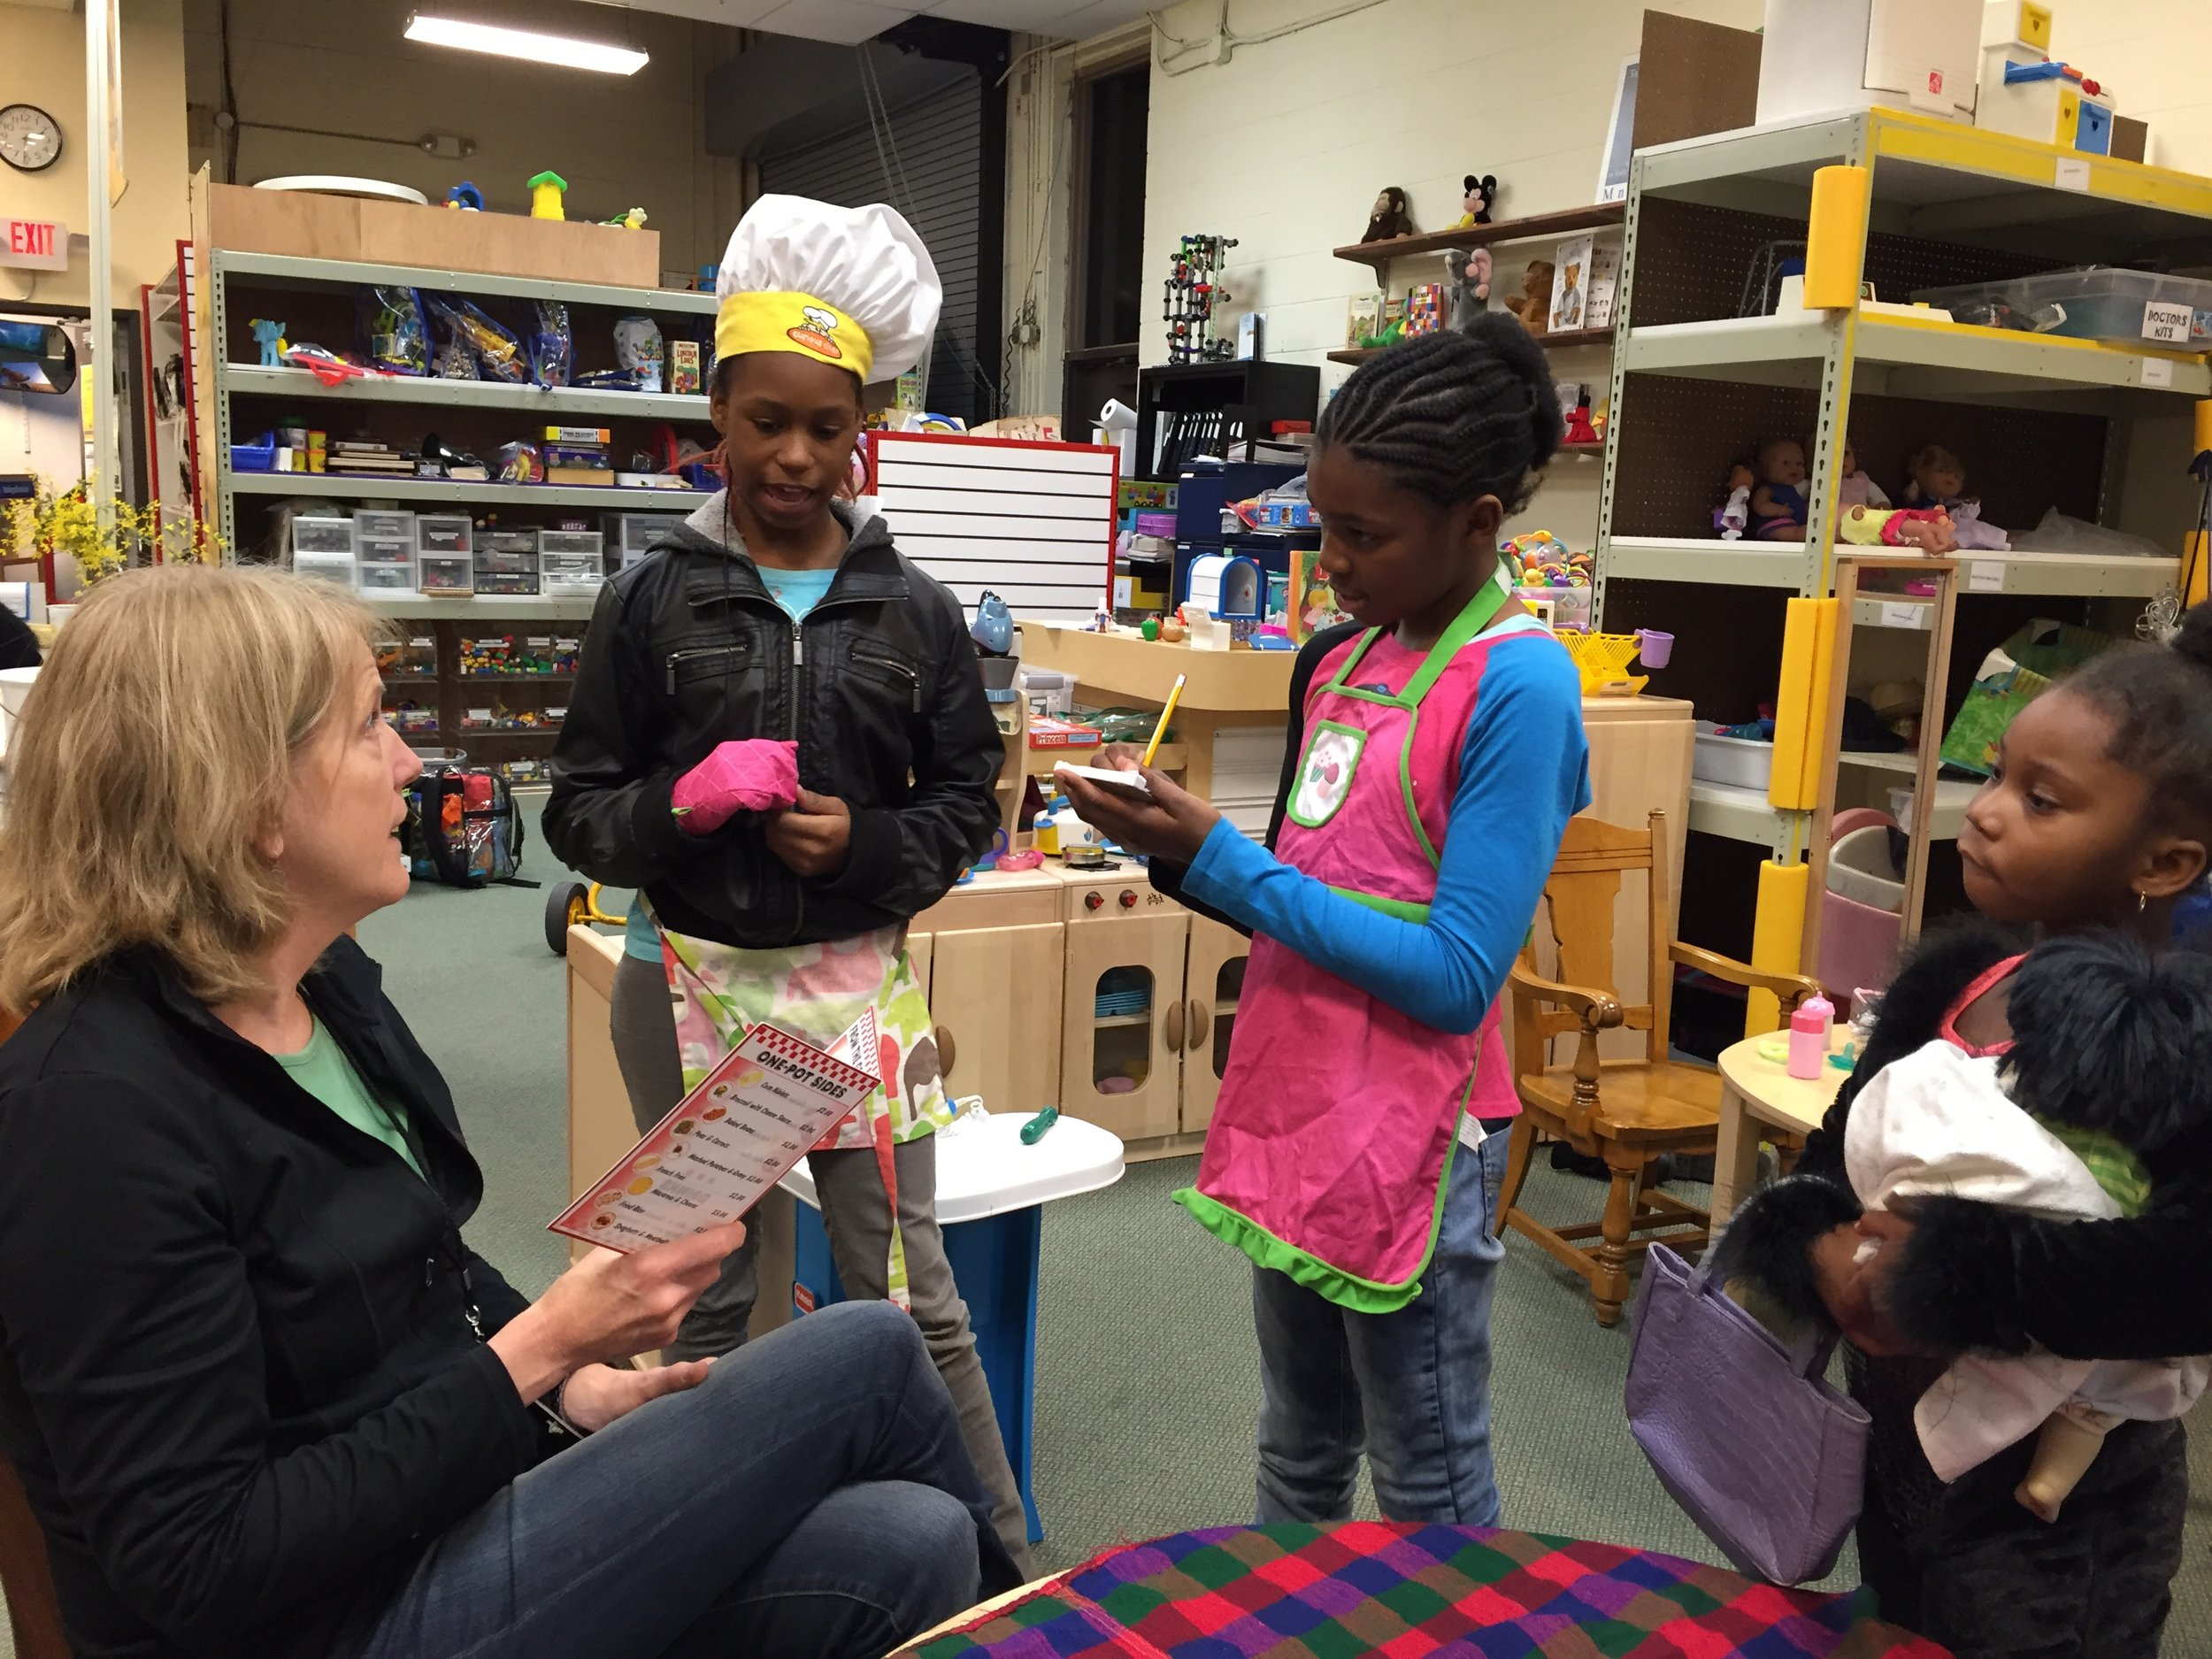 Staff helps children deepen their imaginative, dramatic play and literacy skills. -